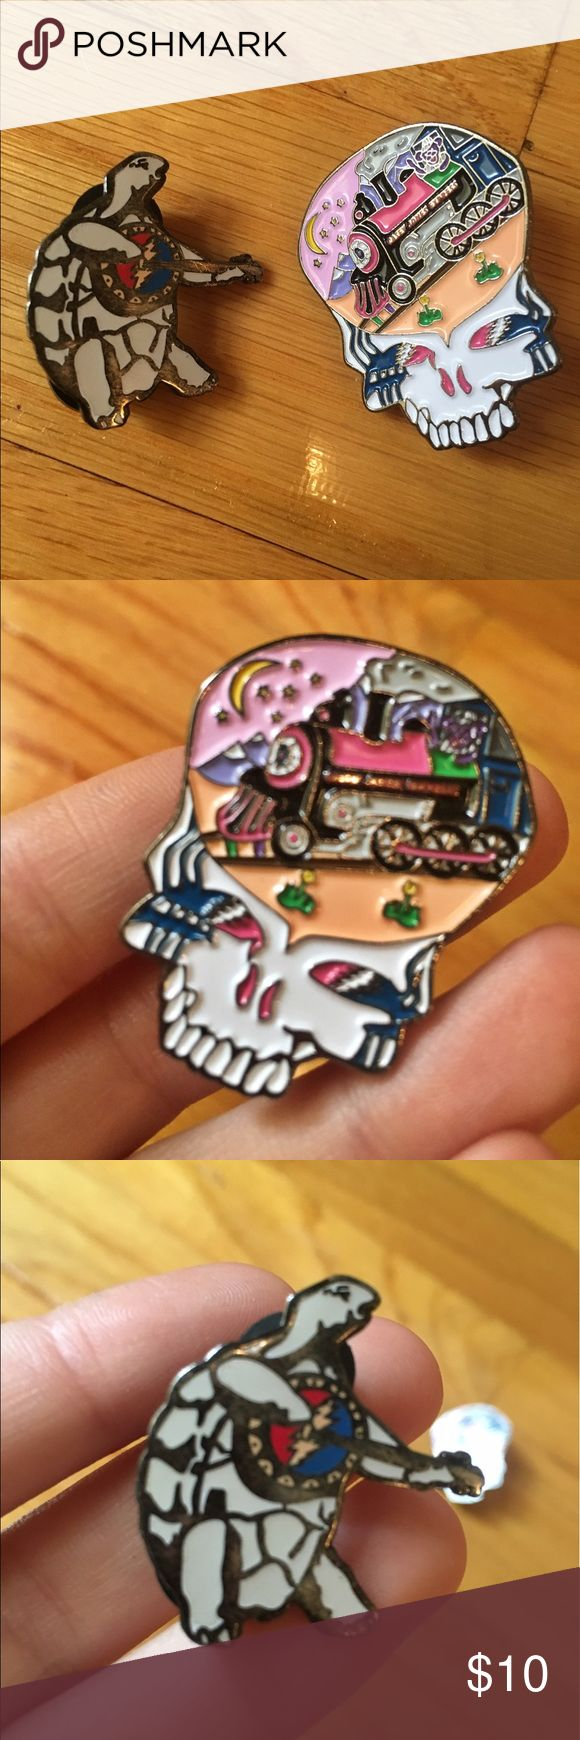 Terrapin / Casey Jones Grateful Dead hat pins Grateful Dead hat pins! Terrapin Traders turtle playing banjo pin / Casey Jones steal your face pin. BOTH for $10. ⚡️ Accessories